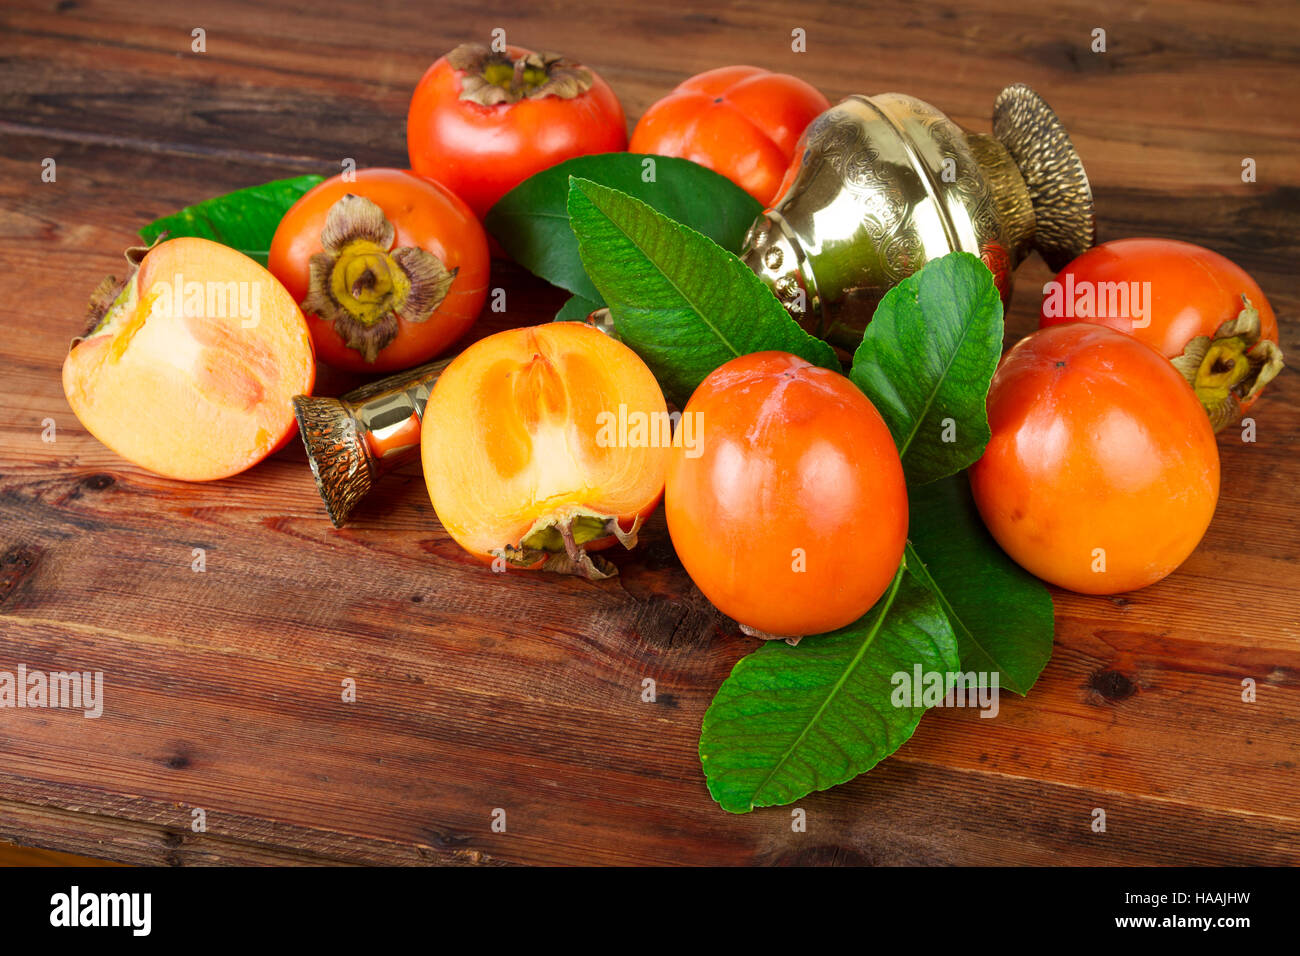 Persimmons kaki fruits with vintage brass vase. Oriental East Persian still life. - Stock Image